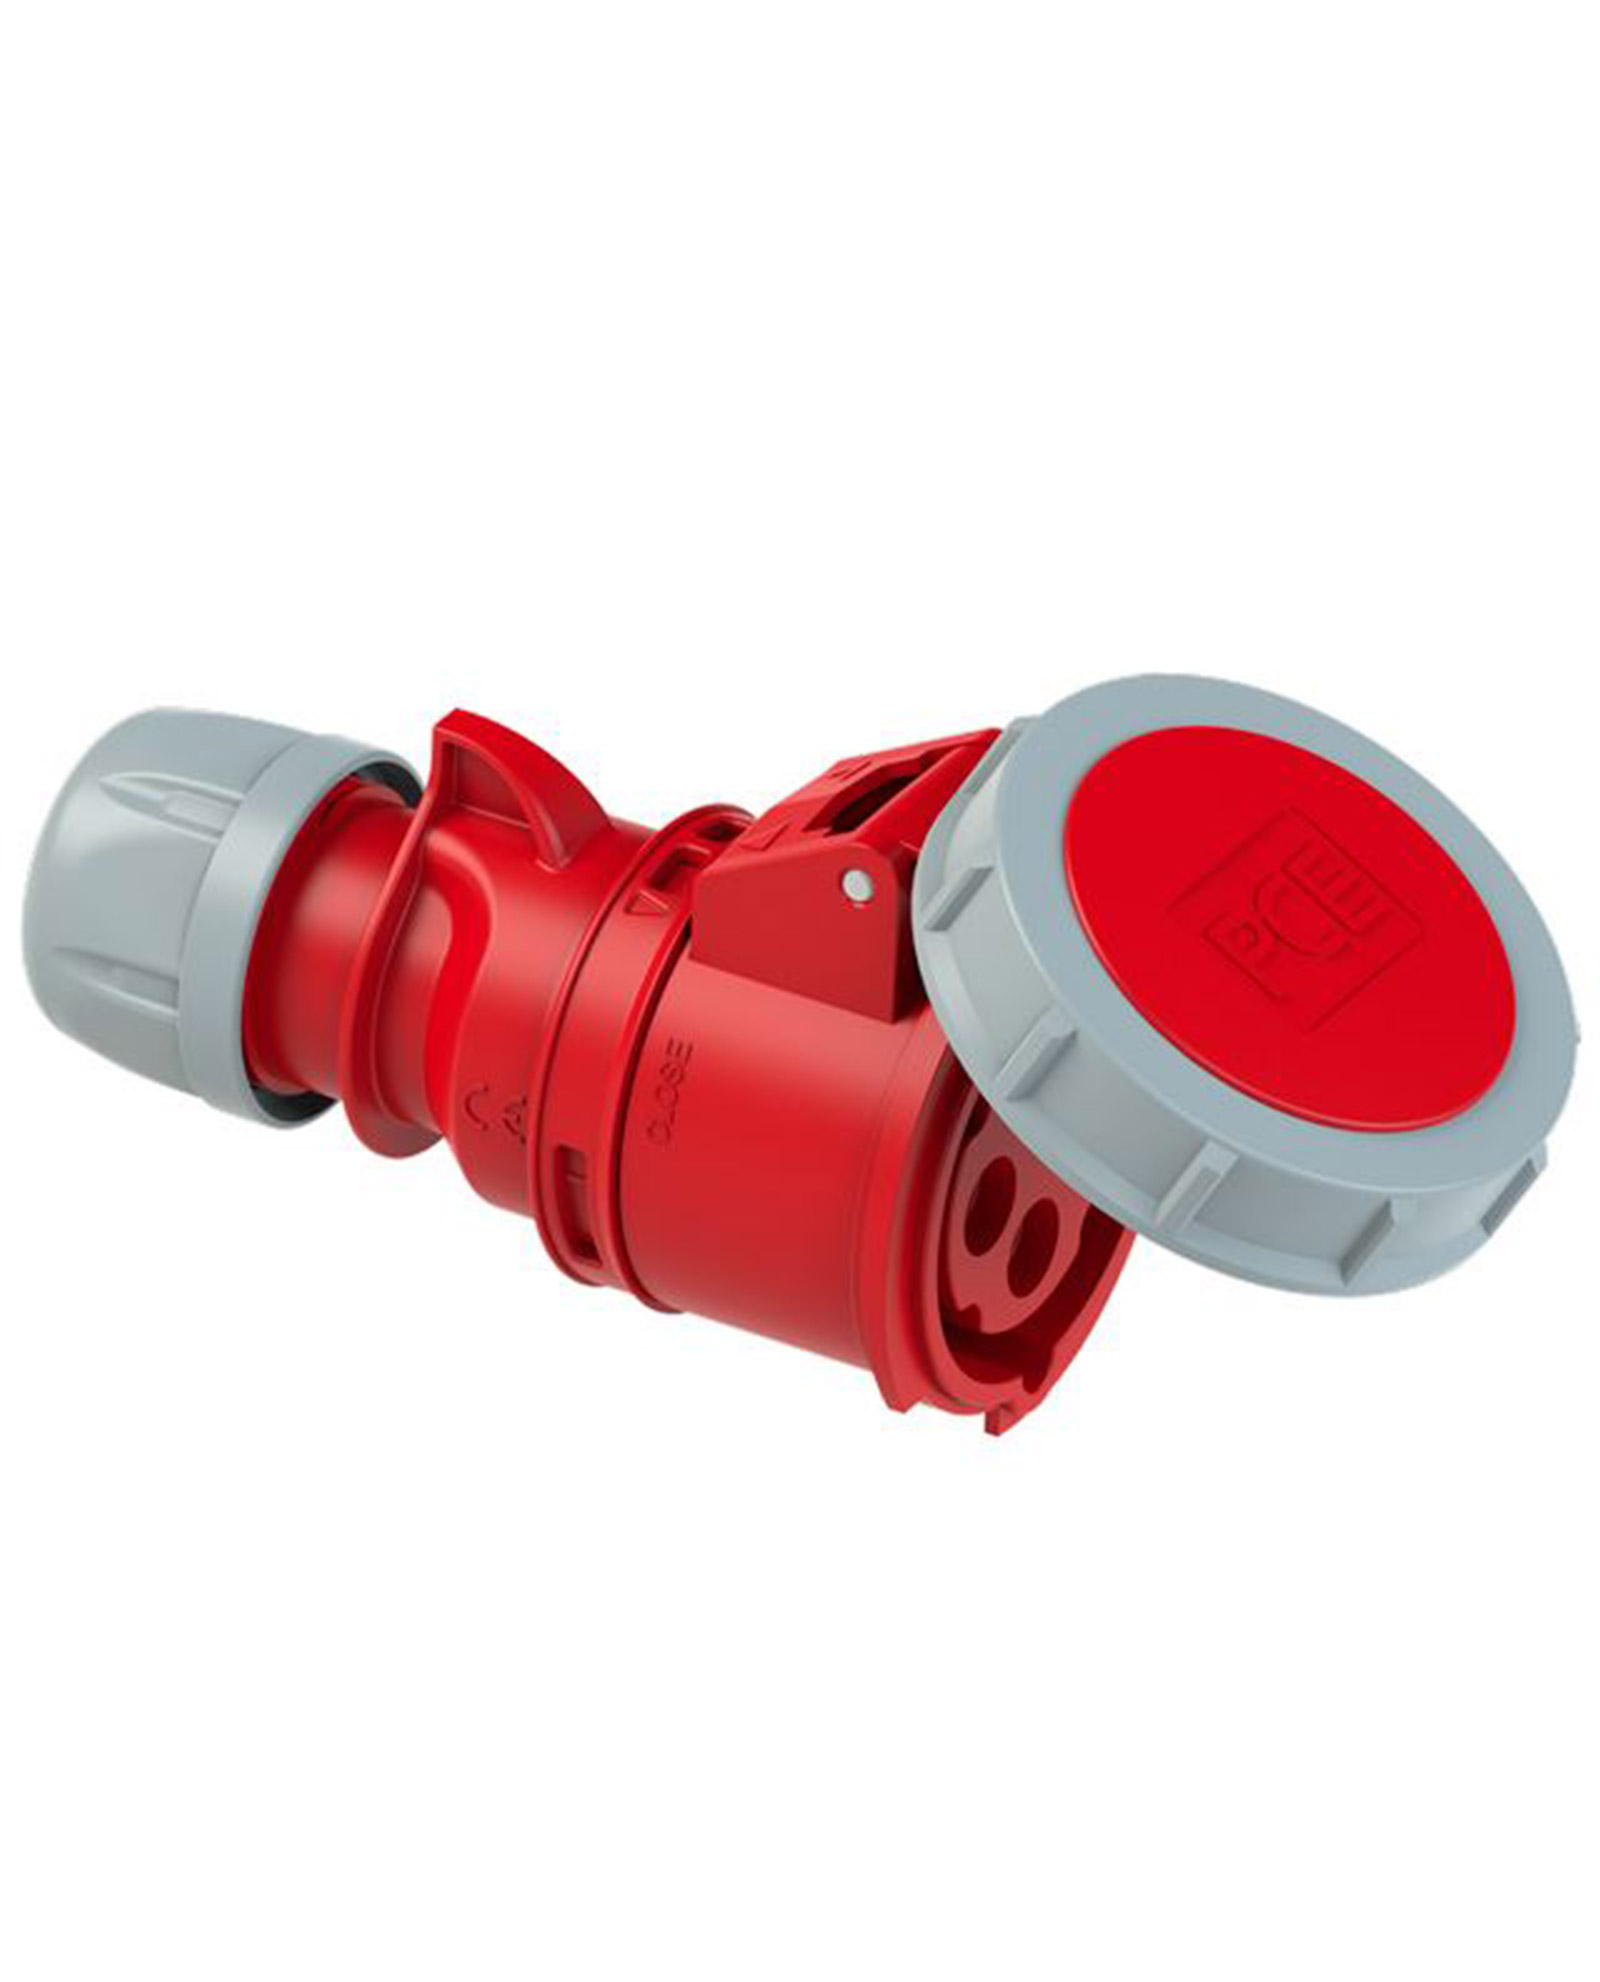 Pce Electric Cce Container Series Cee Socket 32a 4p Ip67